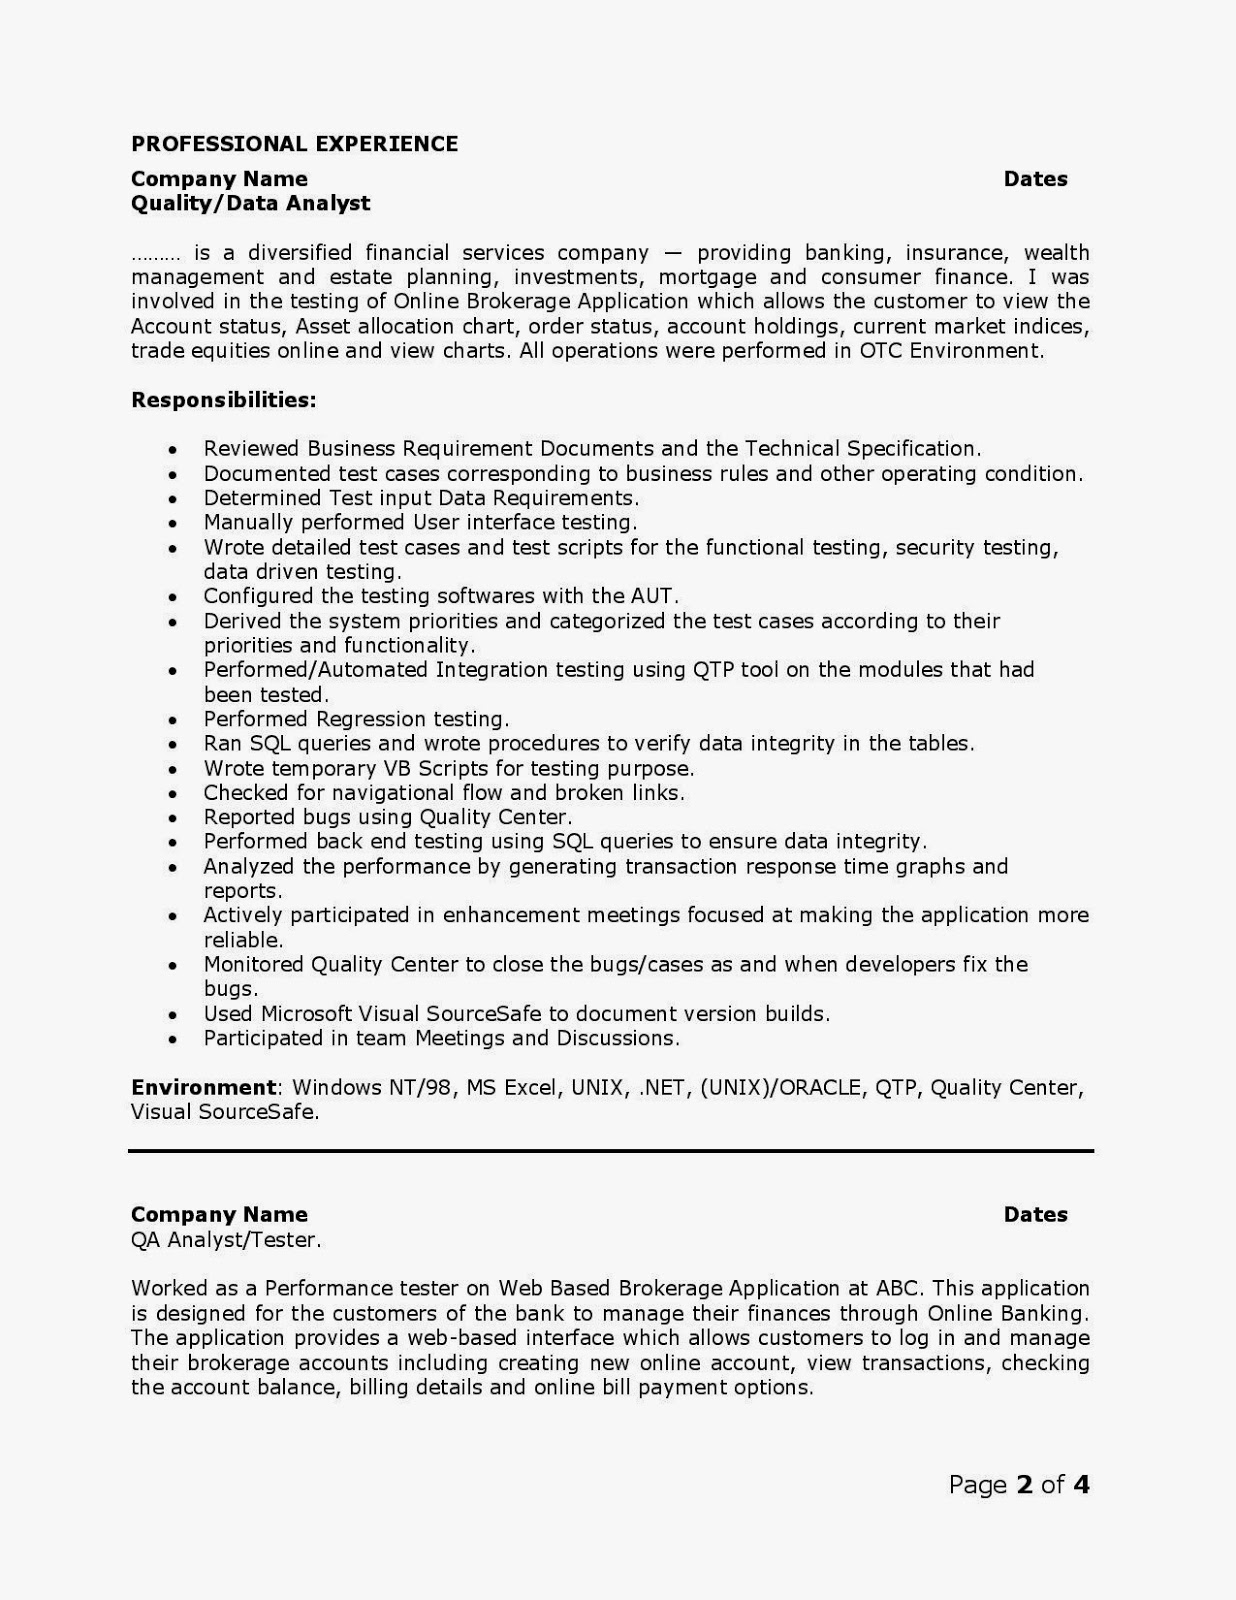 qa web testing resume manual format sample completely free templates experienced attorney Resume Manual Testing Resume Format